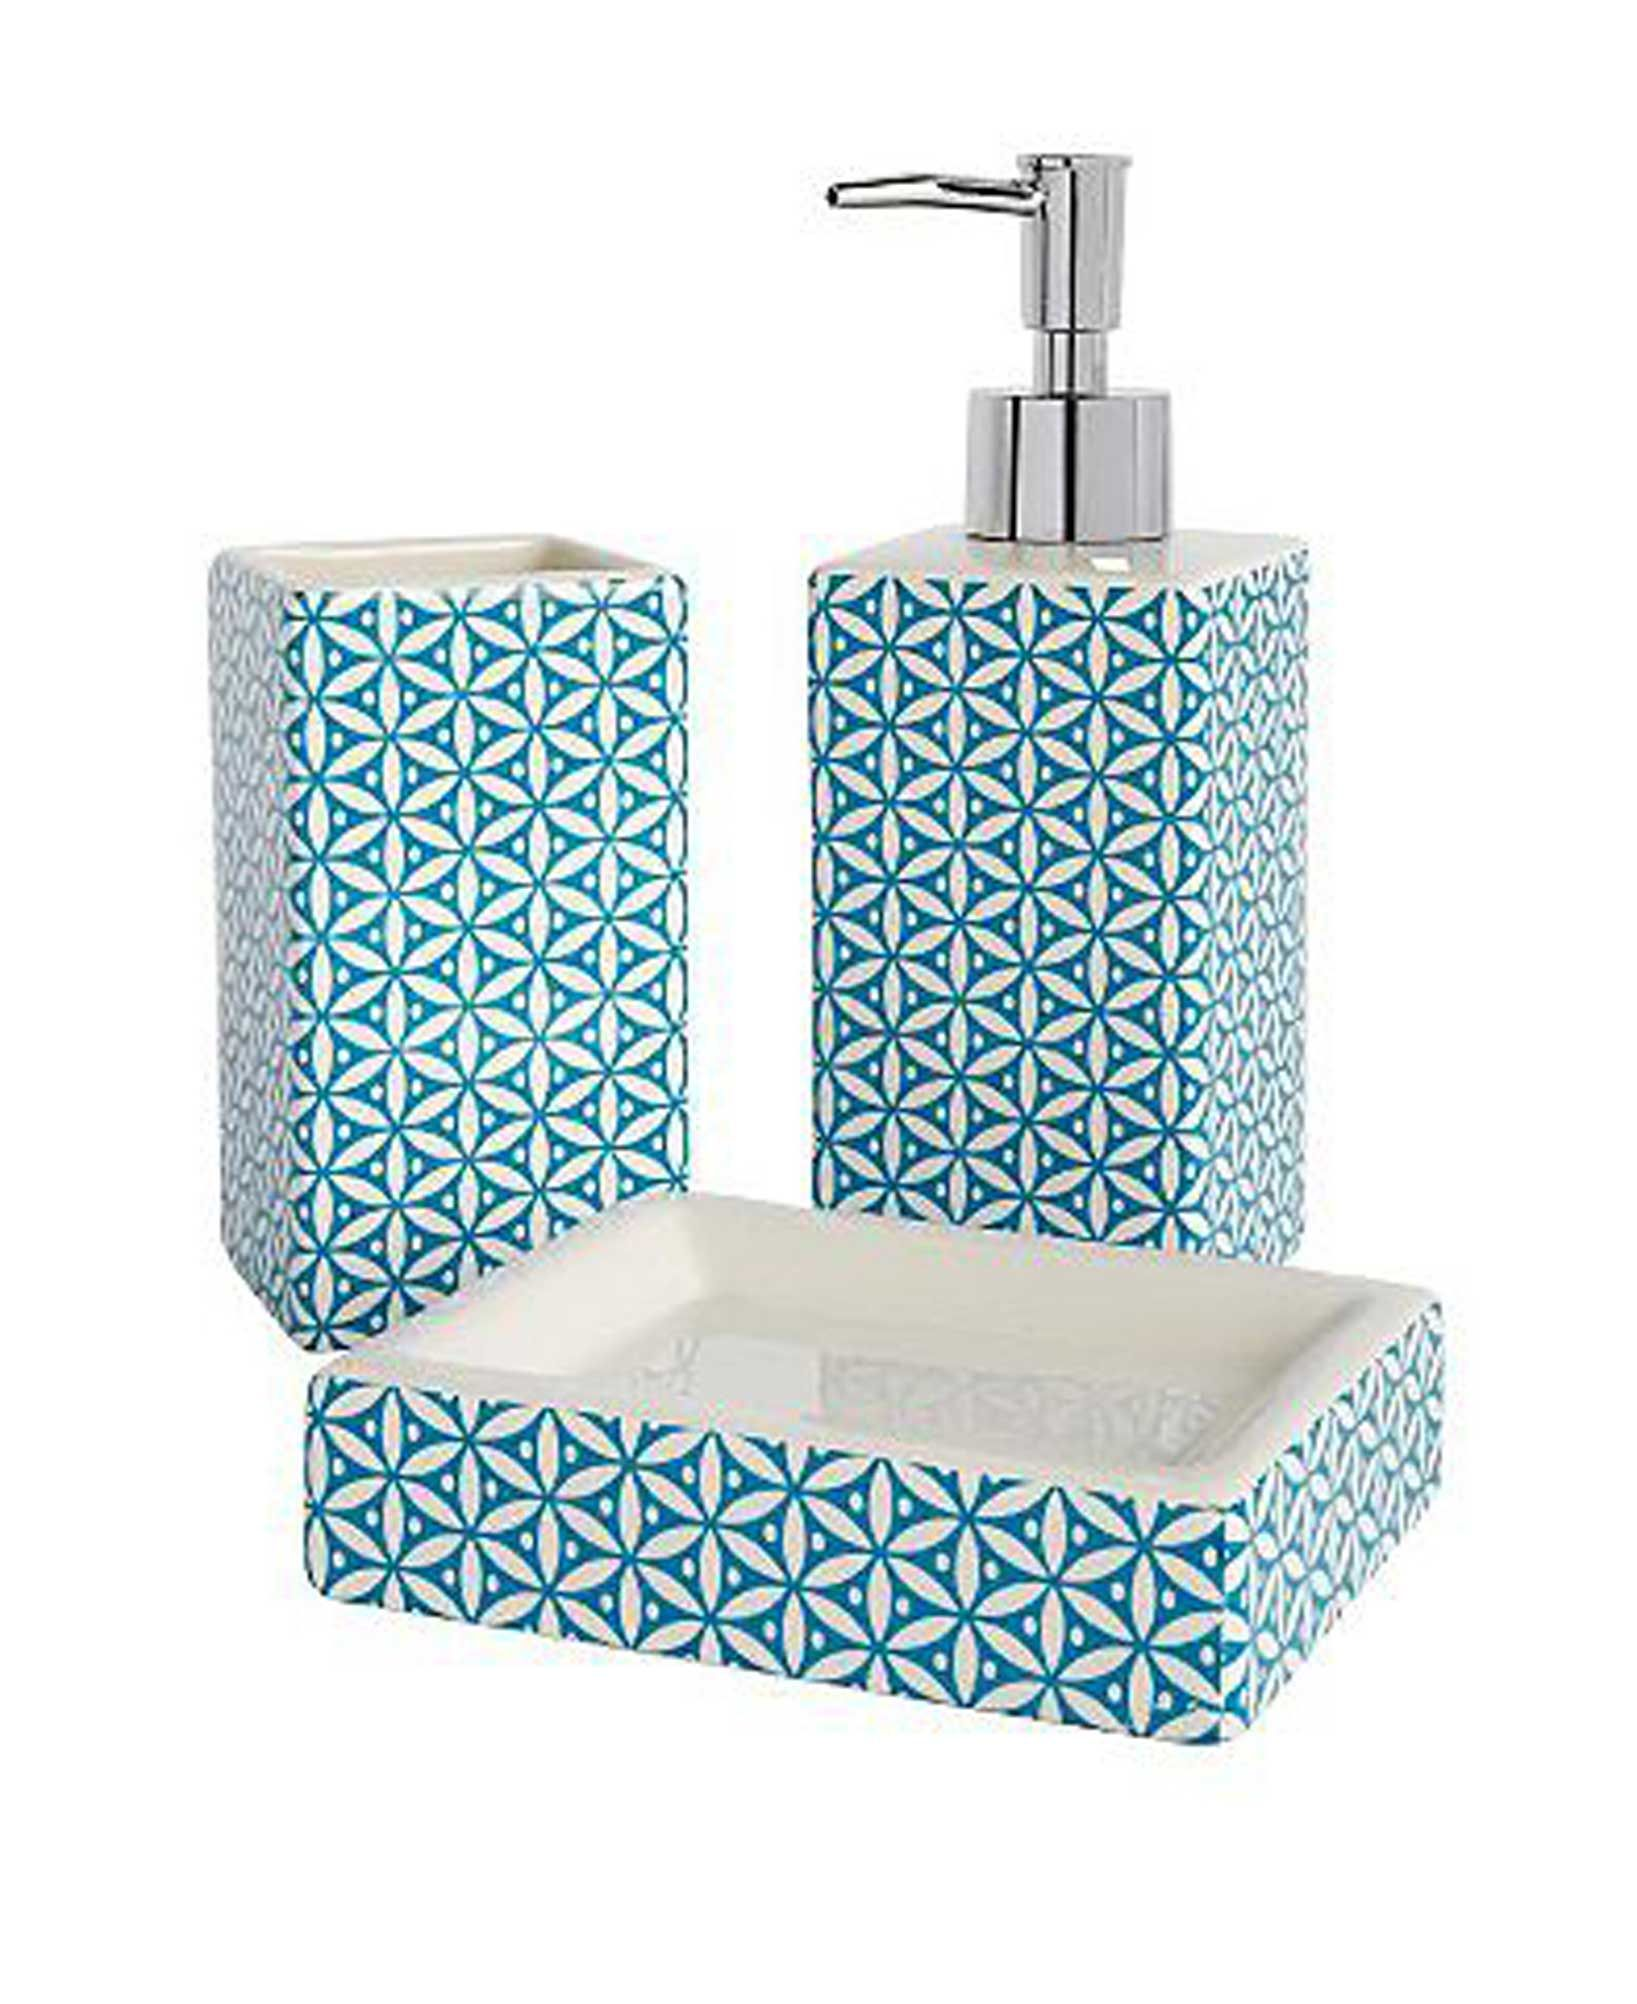 Moroccan bathroom accessories - Moroccan Bathroom Accessories Google Search